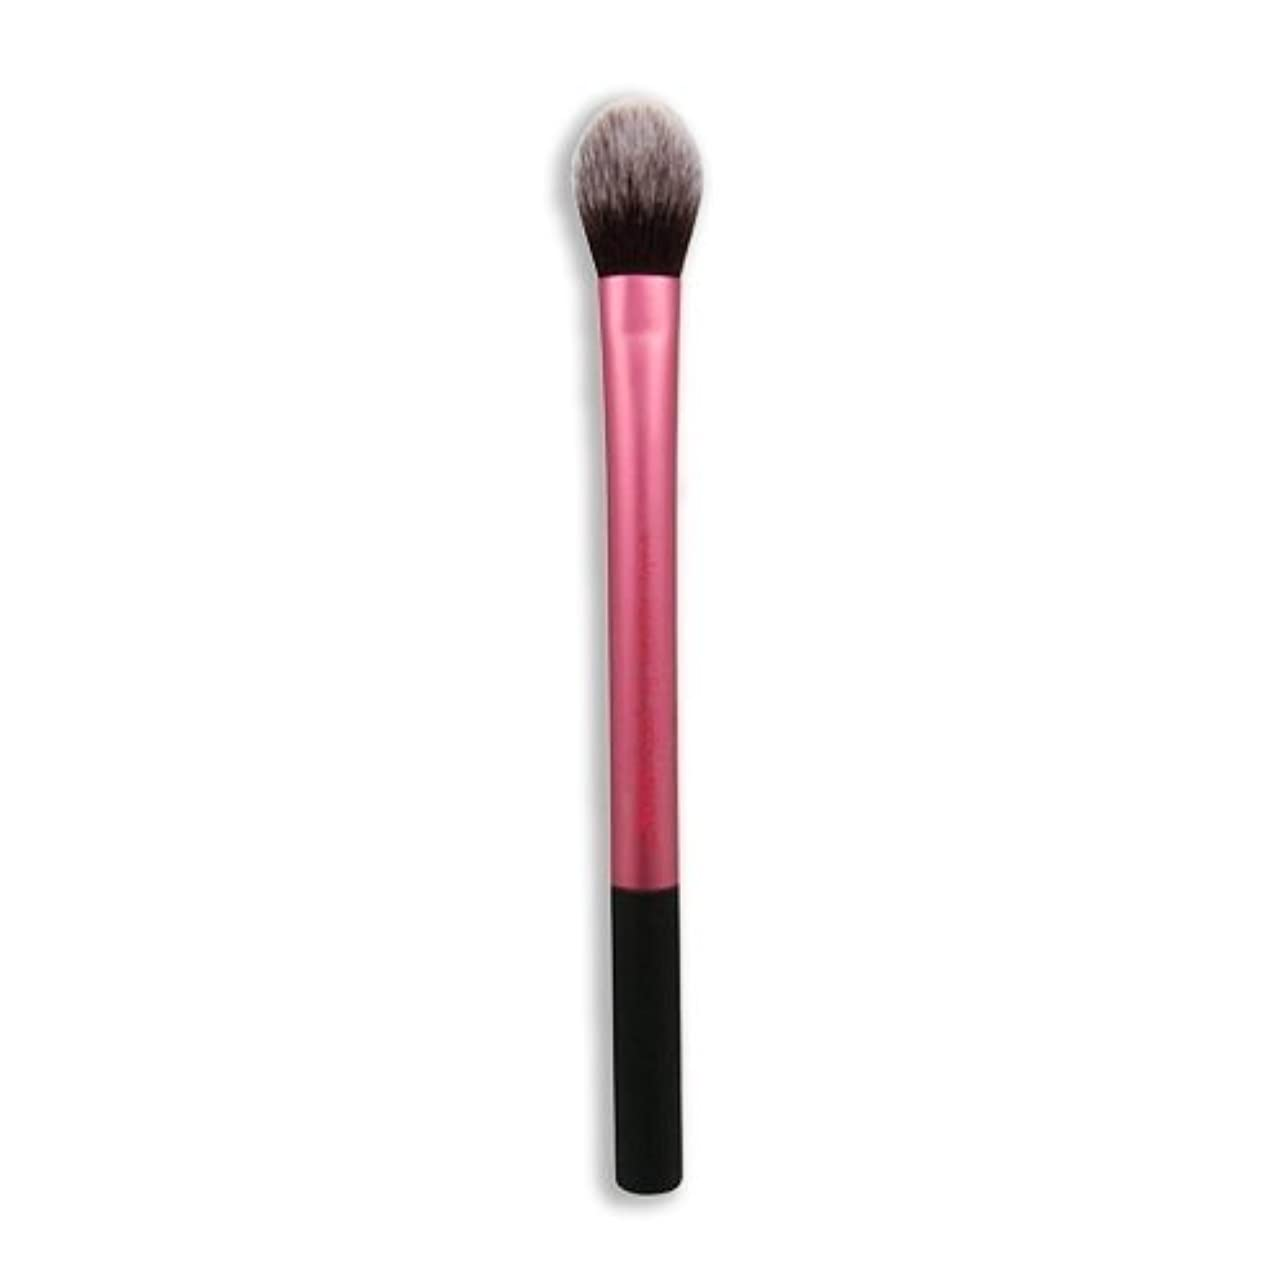 モスク寮刈るReal Techniques Setting Brush - Setting Brush (並行輸入品)